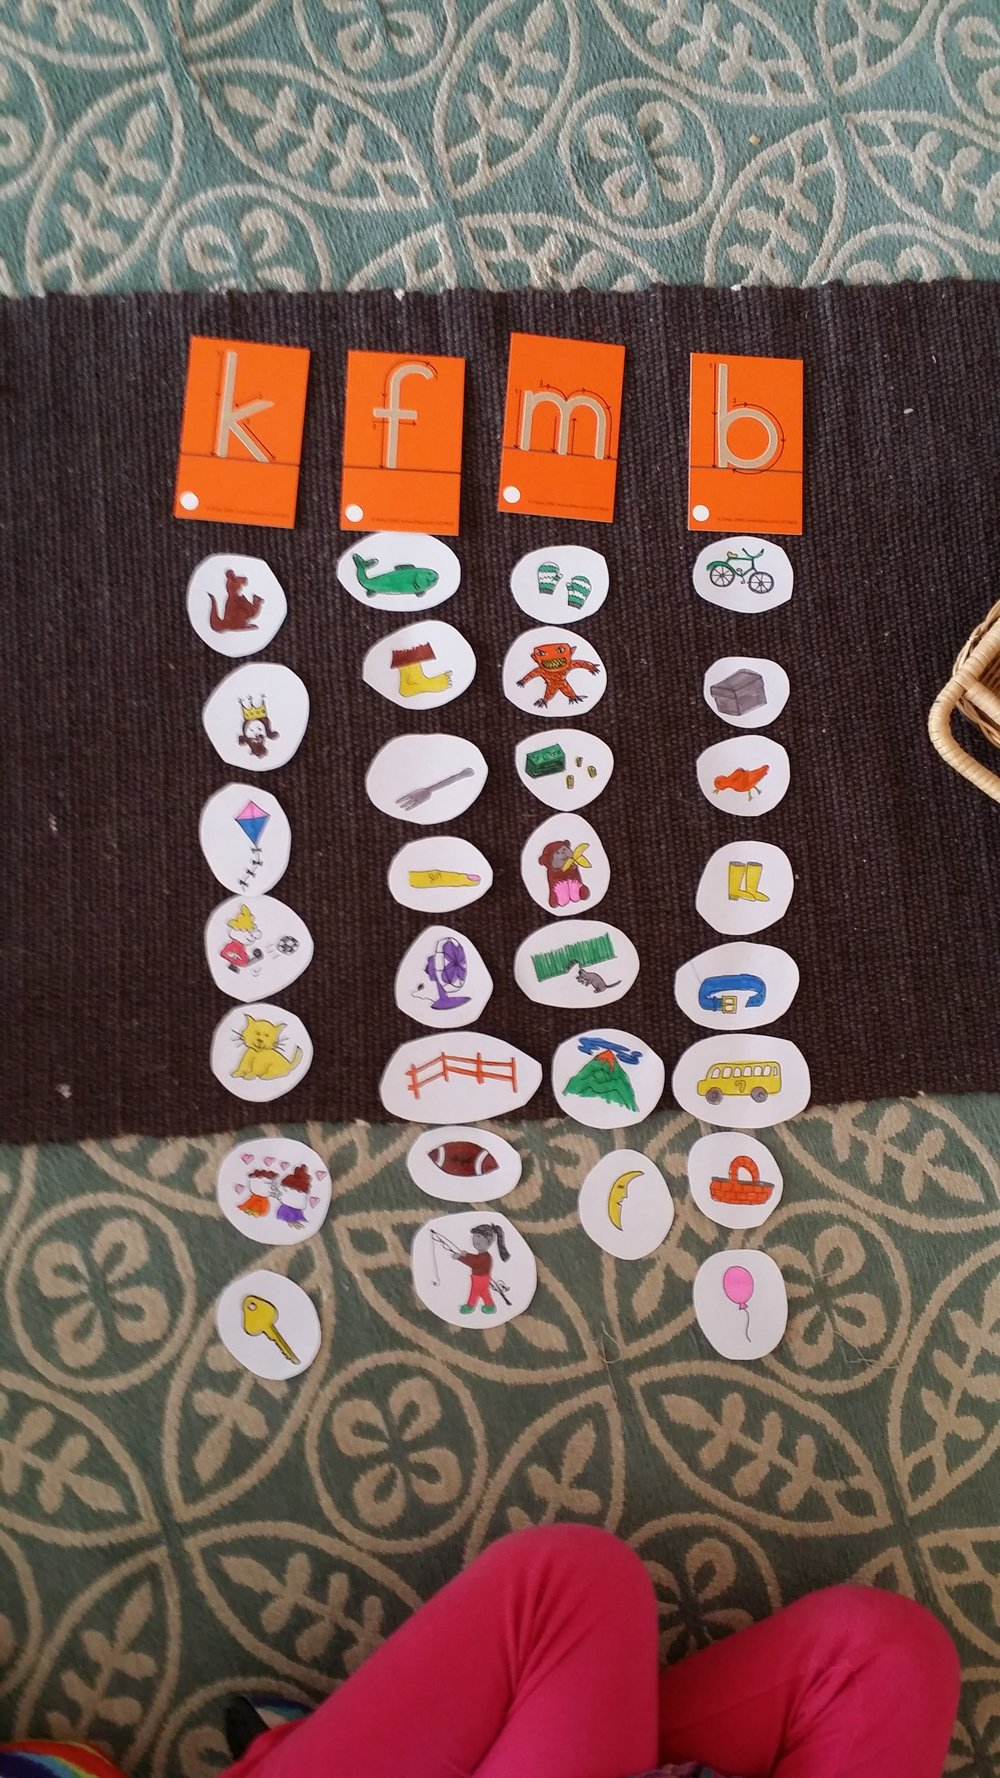 - Beginning sound practice and letter formation.